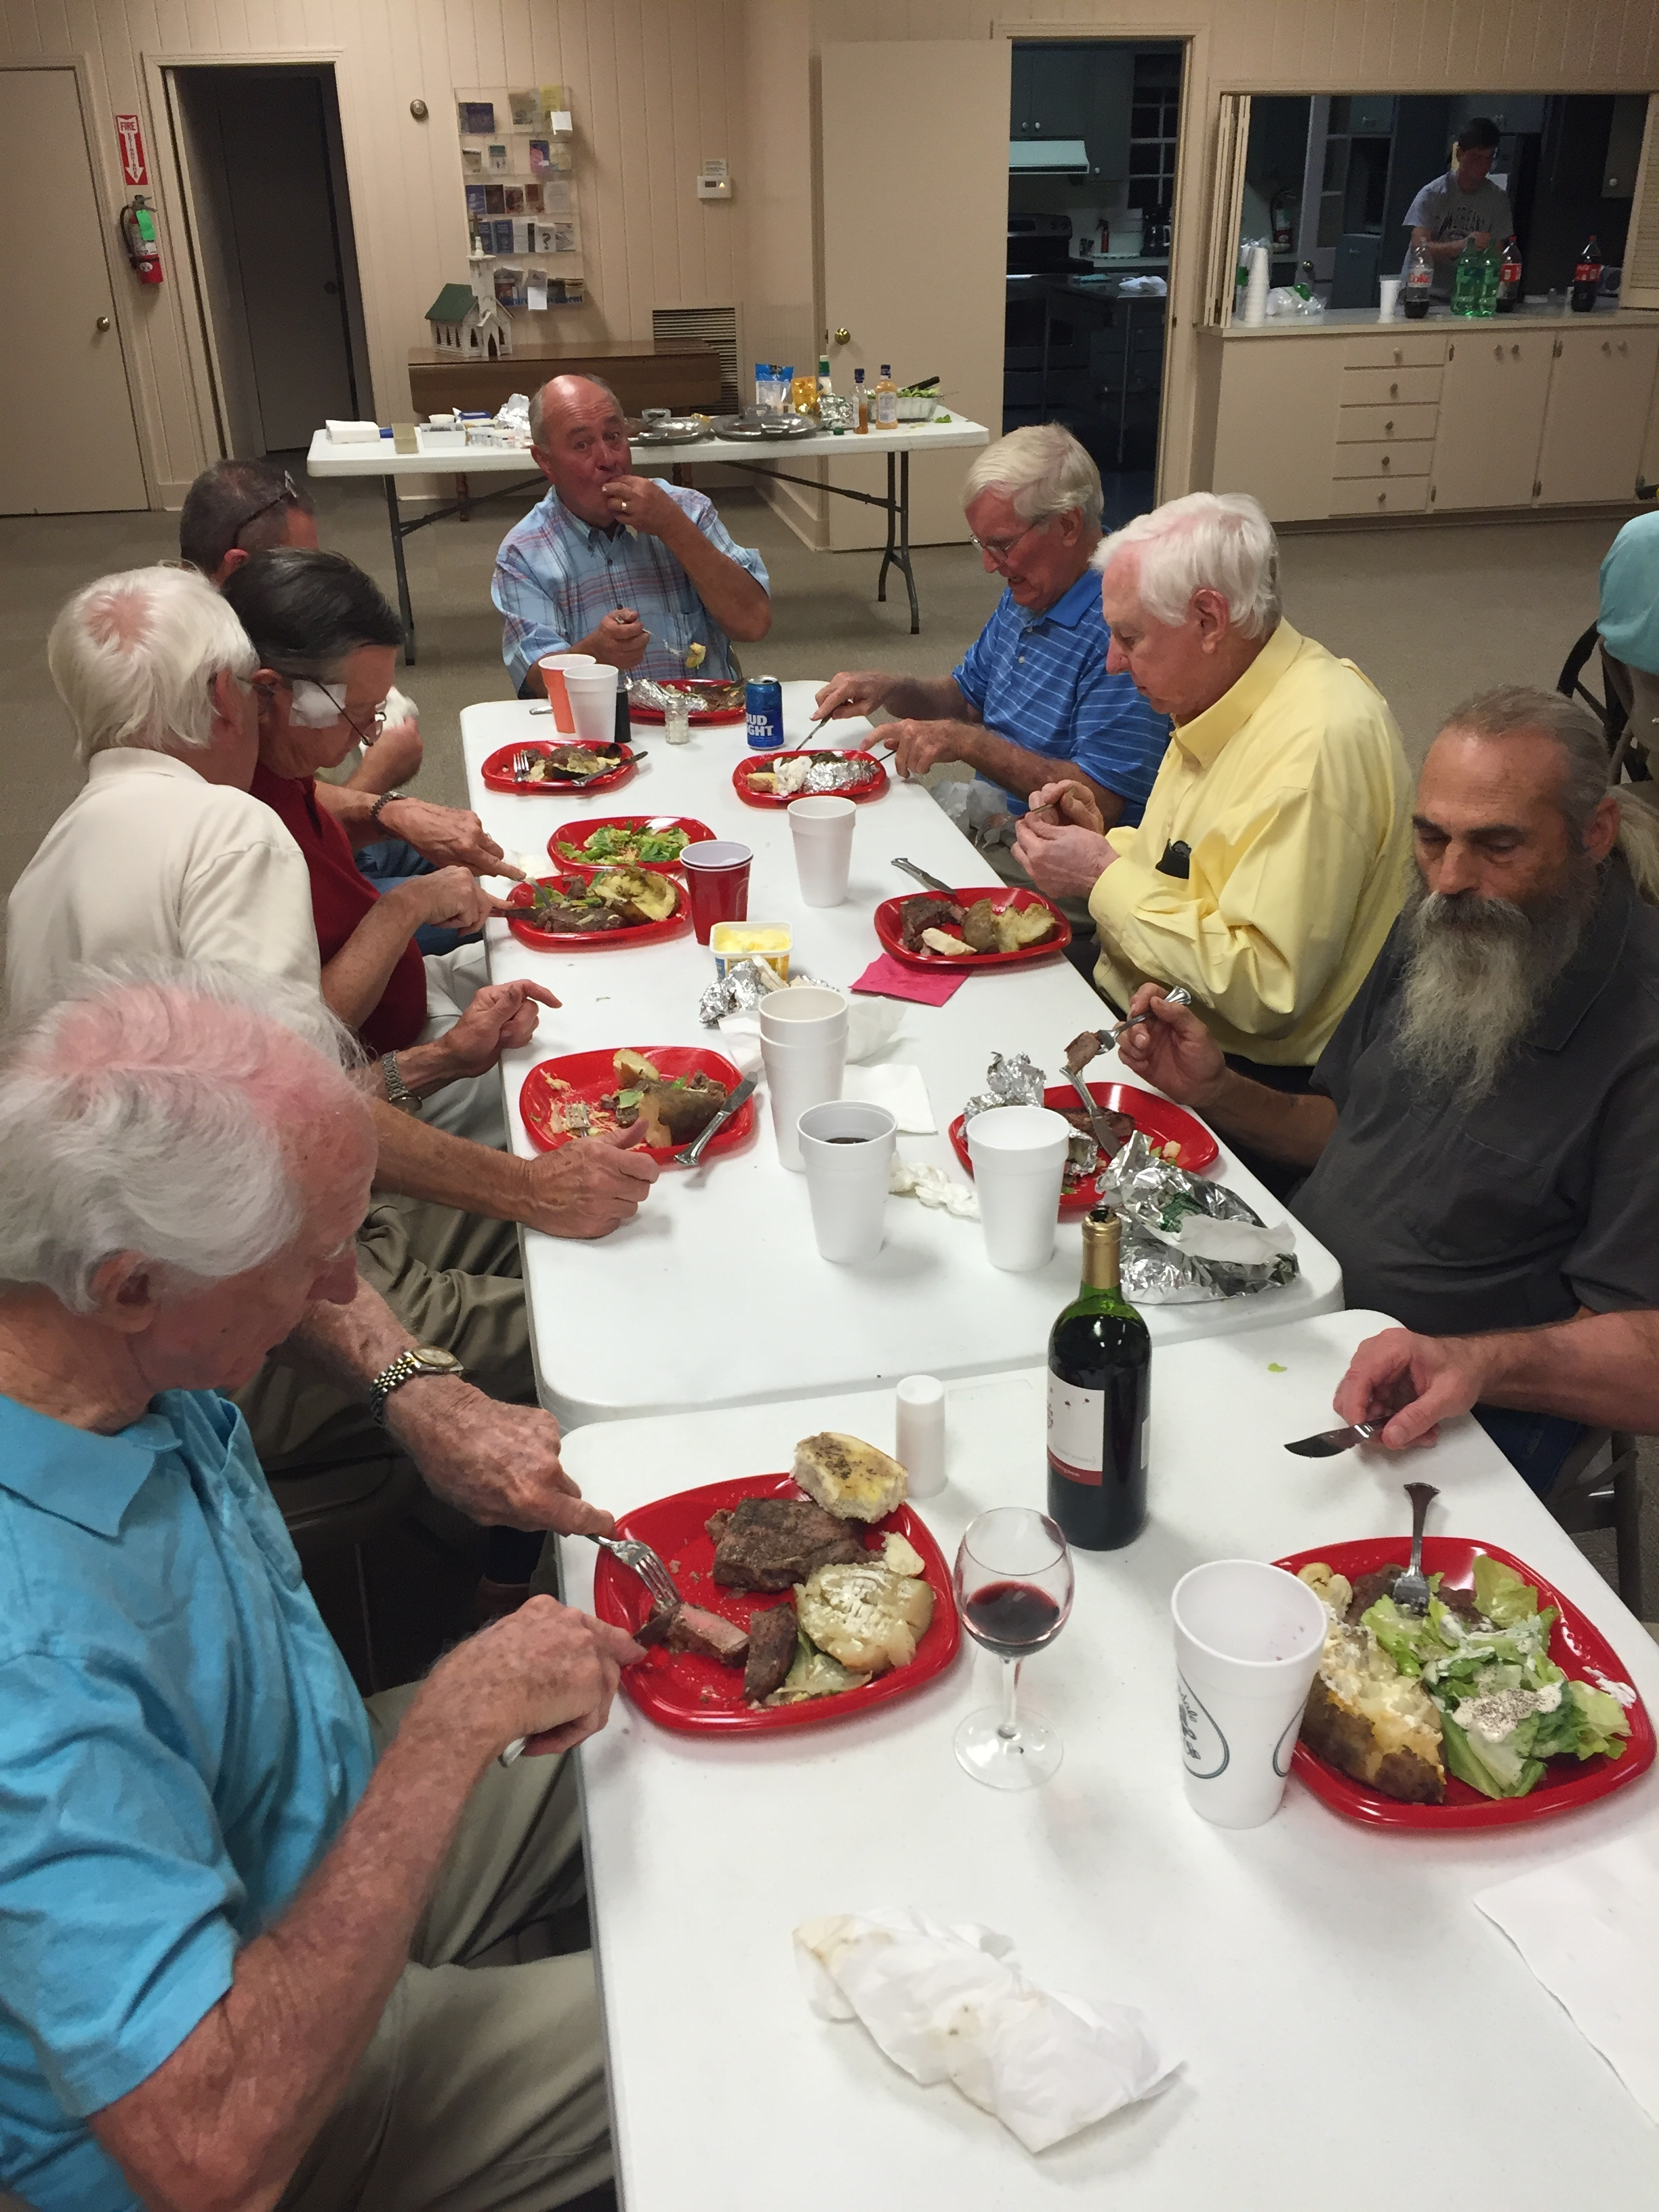 Church Men Enjoying Fellowship During Steak Supper Gathering